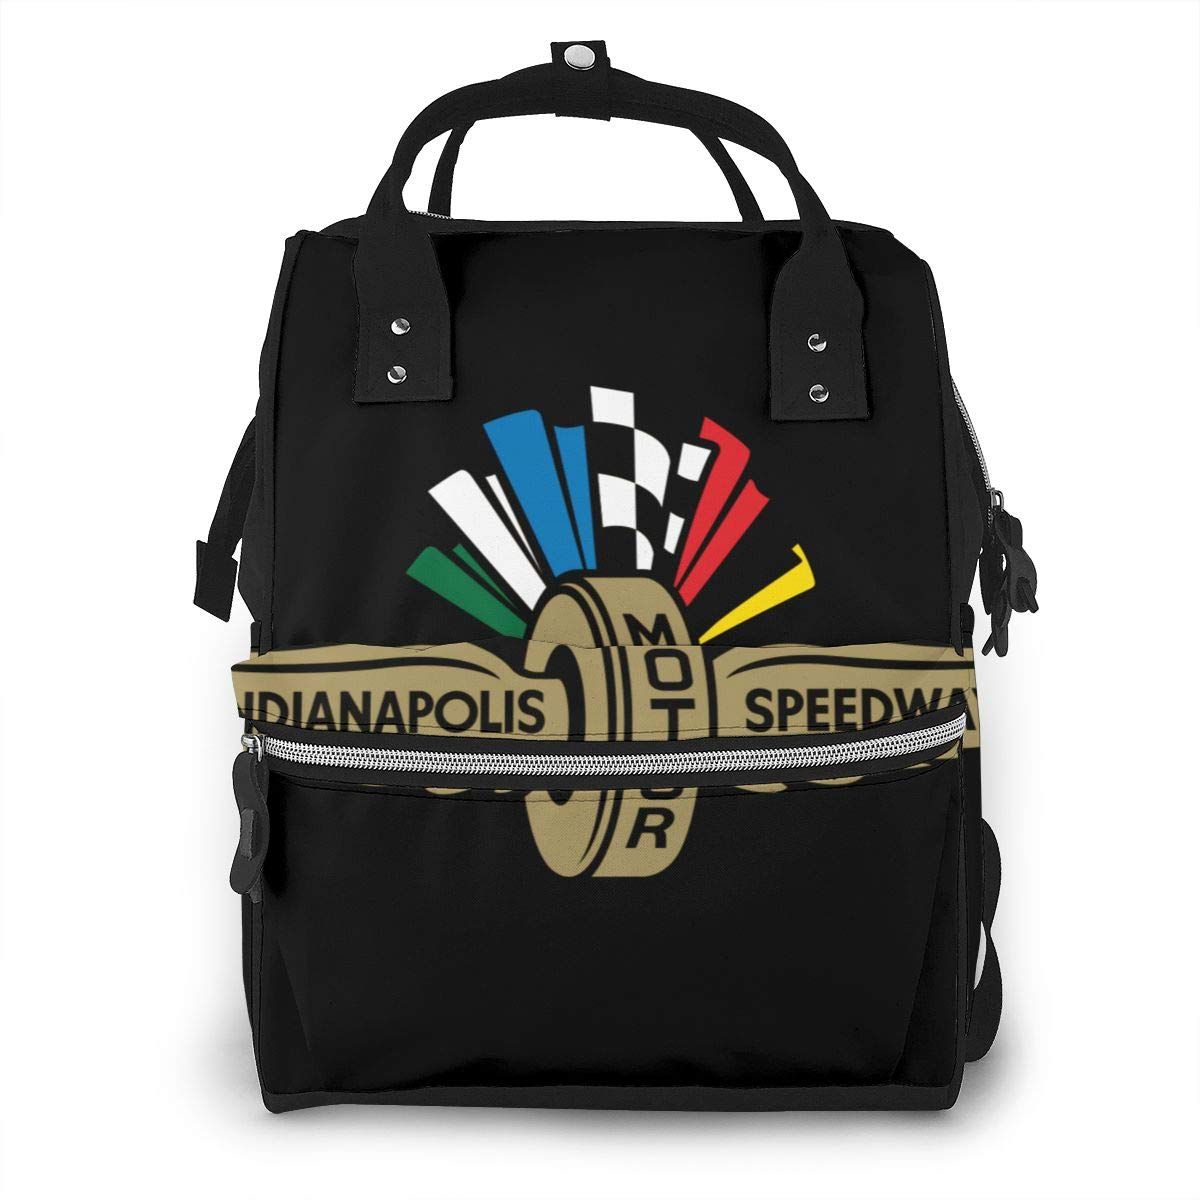 Indianapolis Race Car Diaper Bag Waterproof Travel Backpack Bags for Baby Care Mummy Backpack